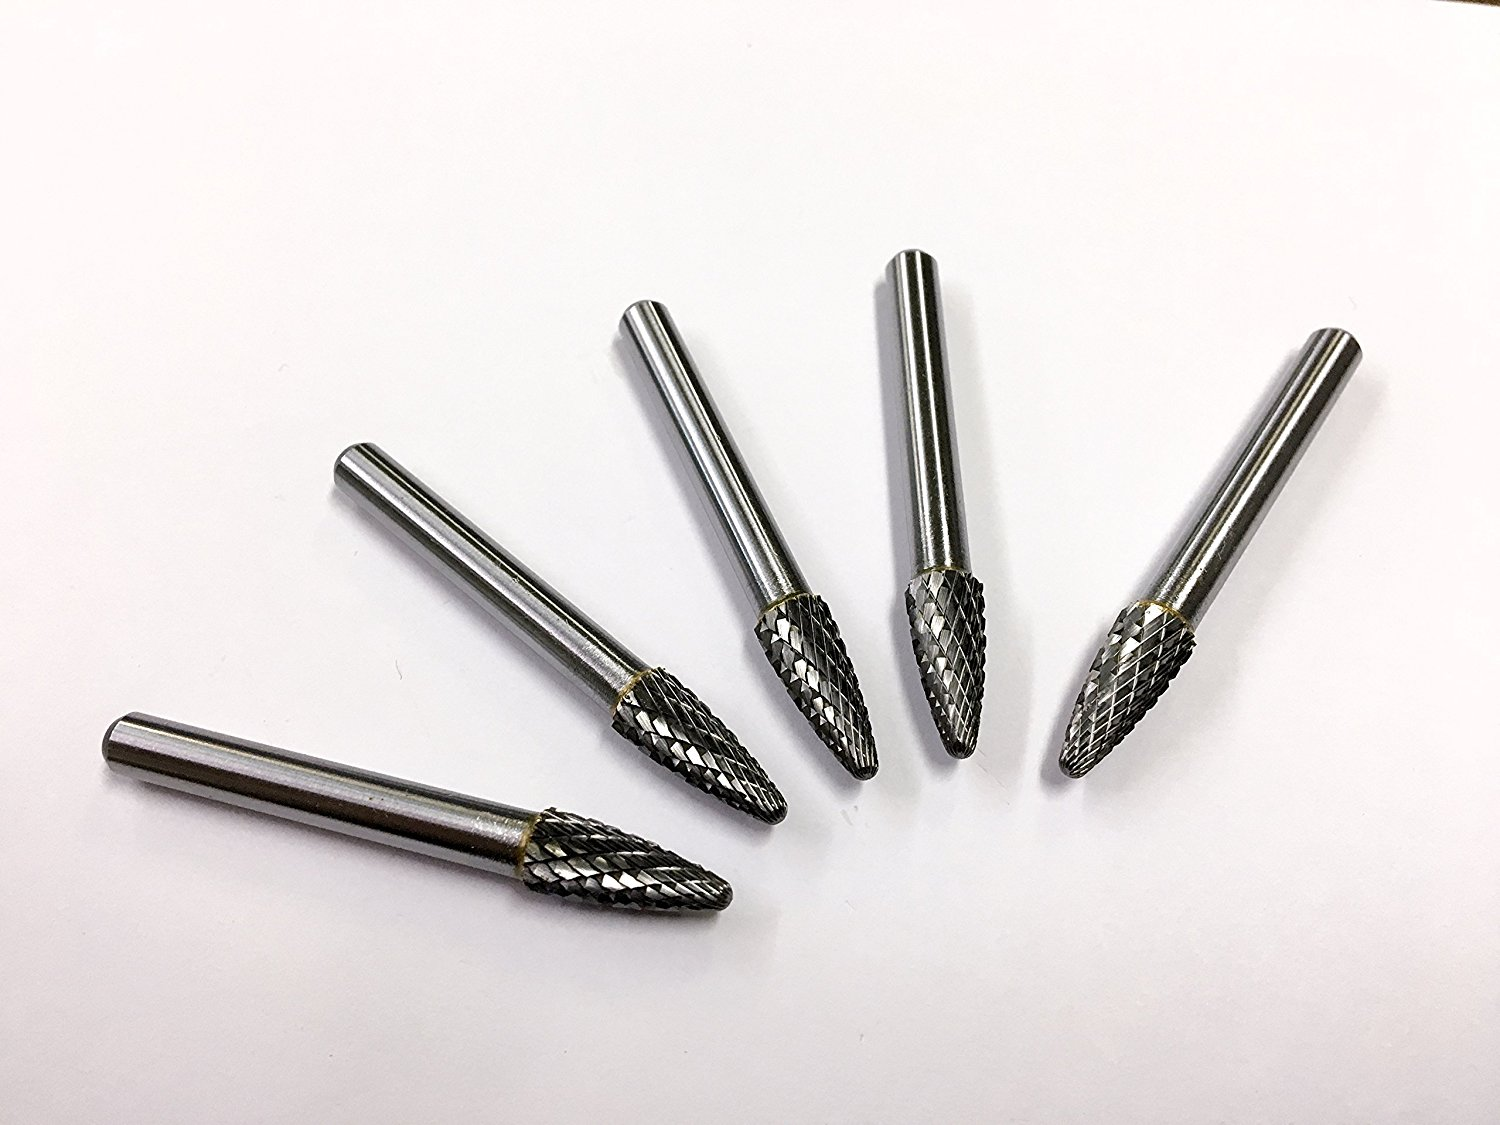 Cheap Carbide Burr Tools, find Carbide Burr Tools deals on line at